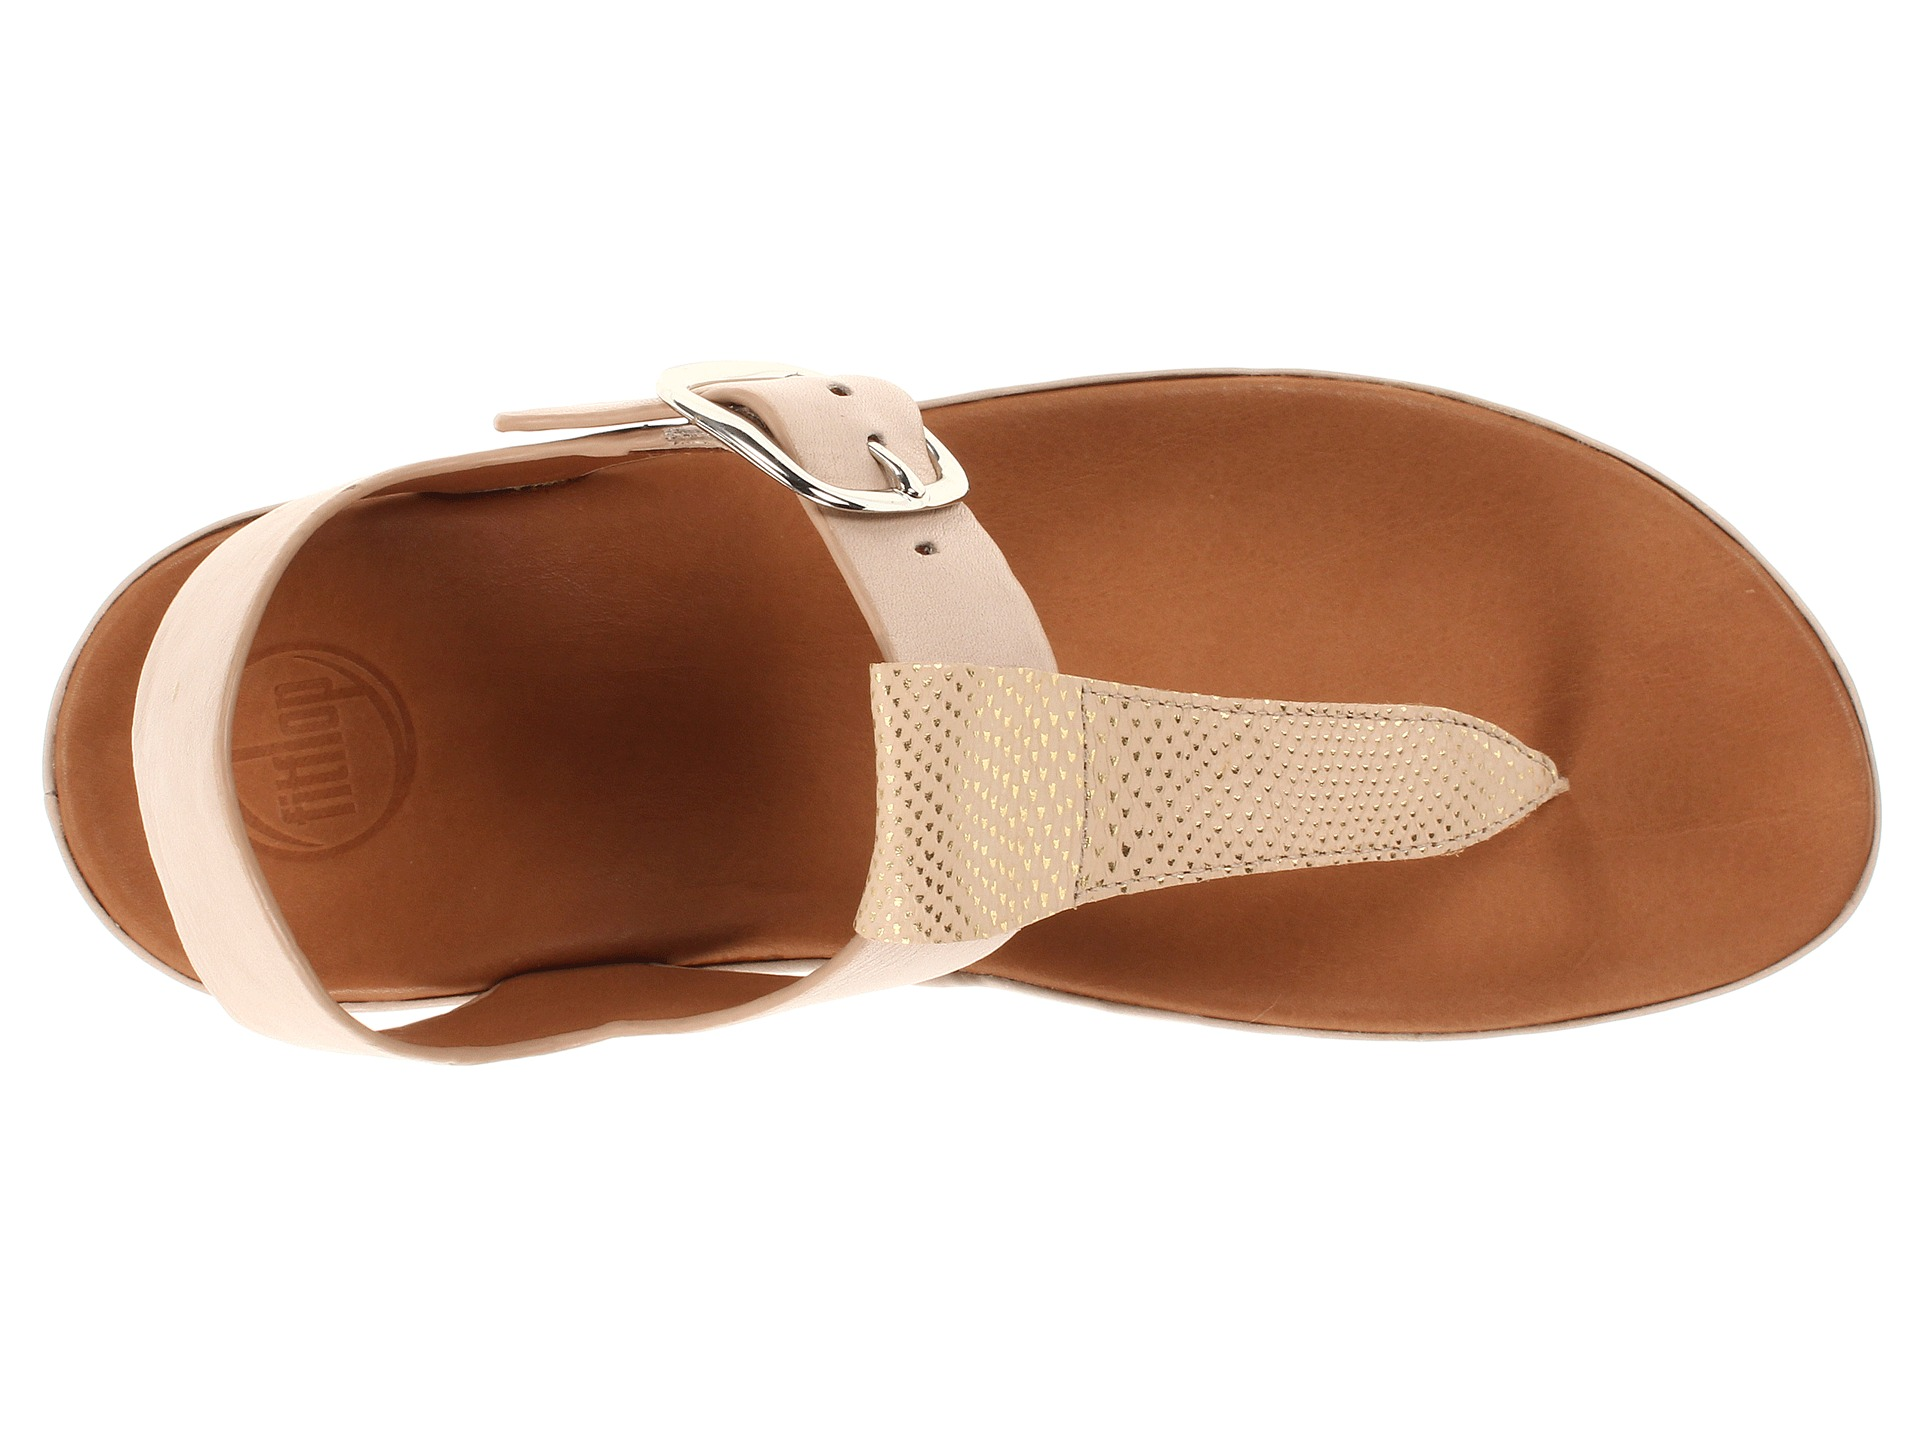 c4891d3364ce76 No results for fitflop tia - Search Zappos